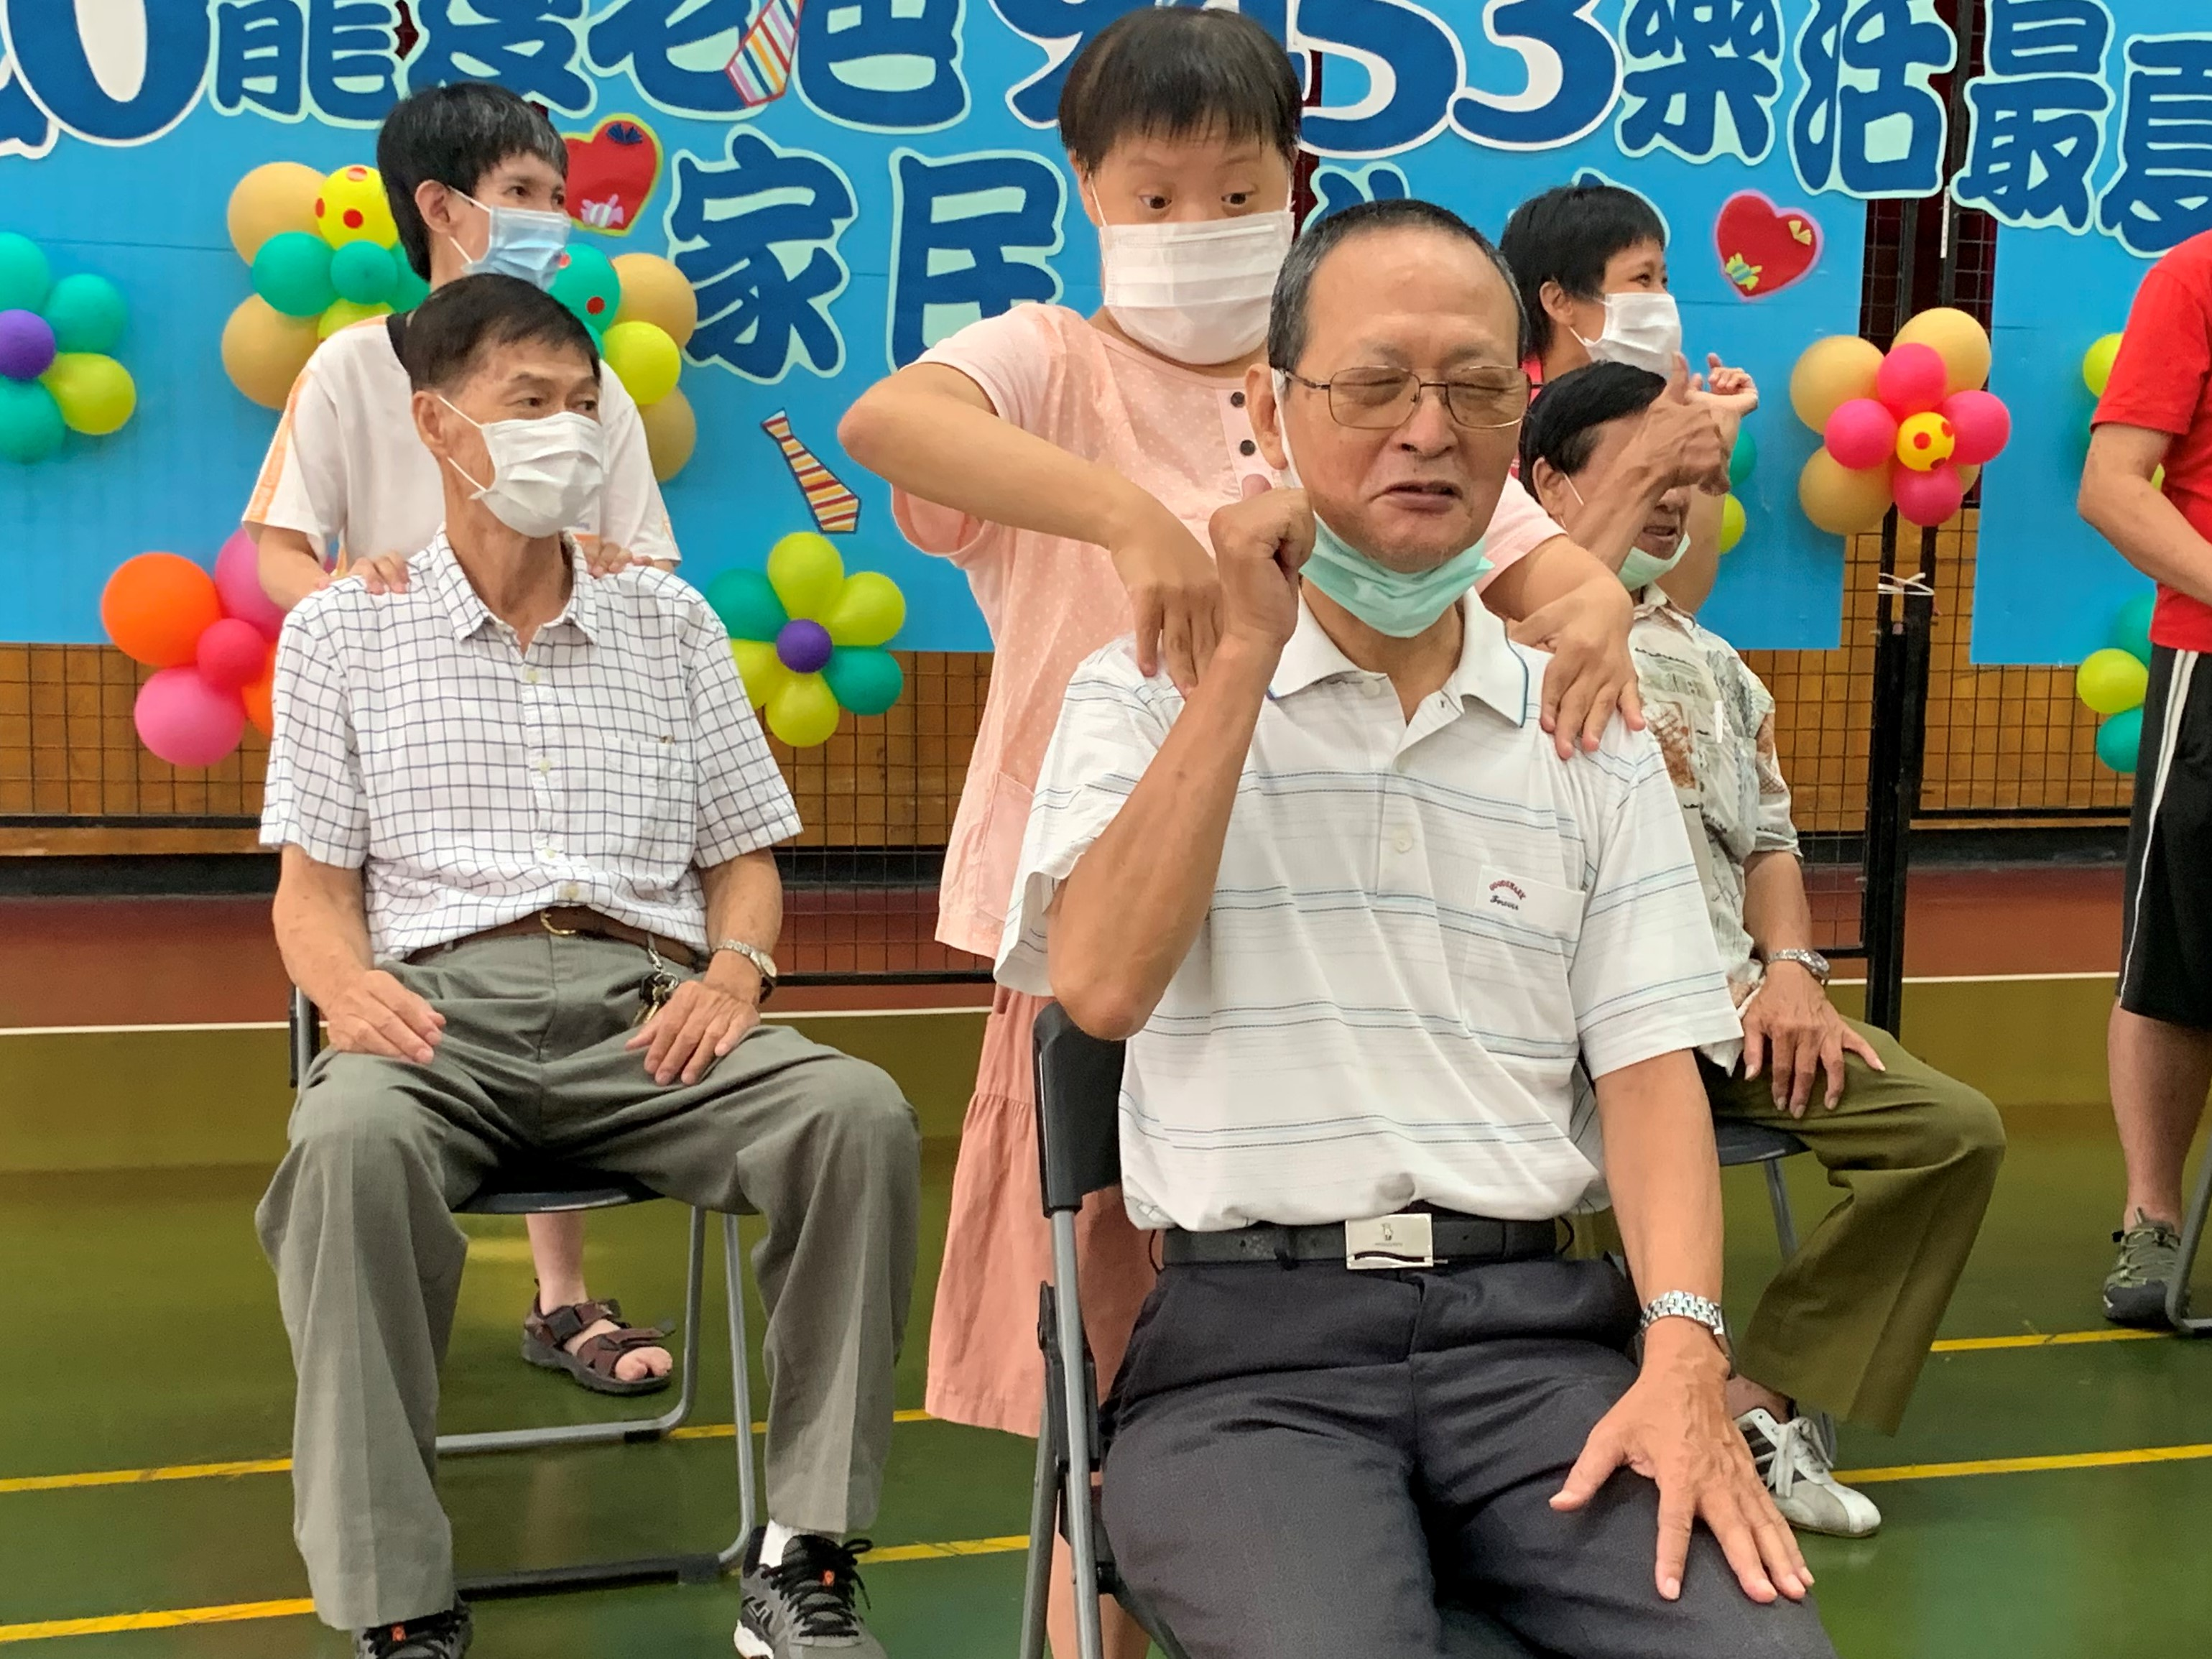 For Father's Day activities, Haner massages his shoulders and necks to relax his muscles.